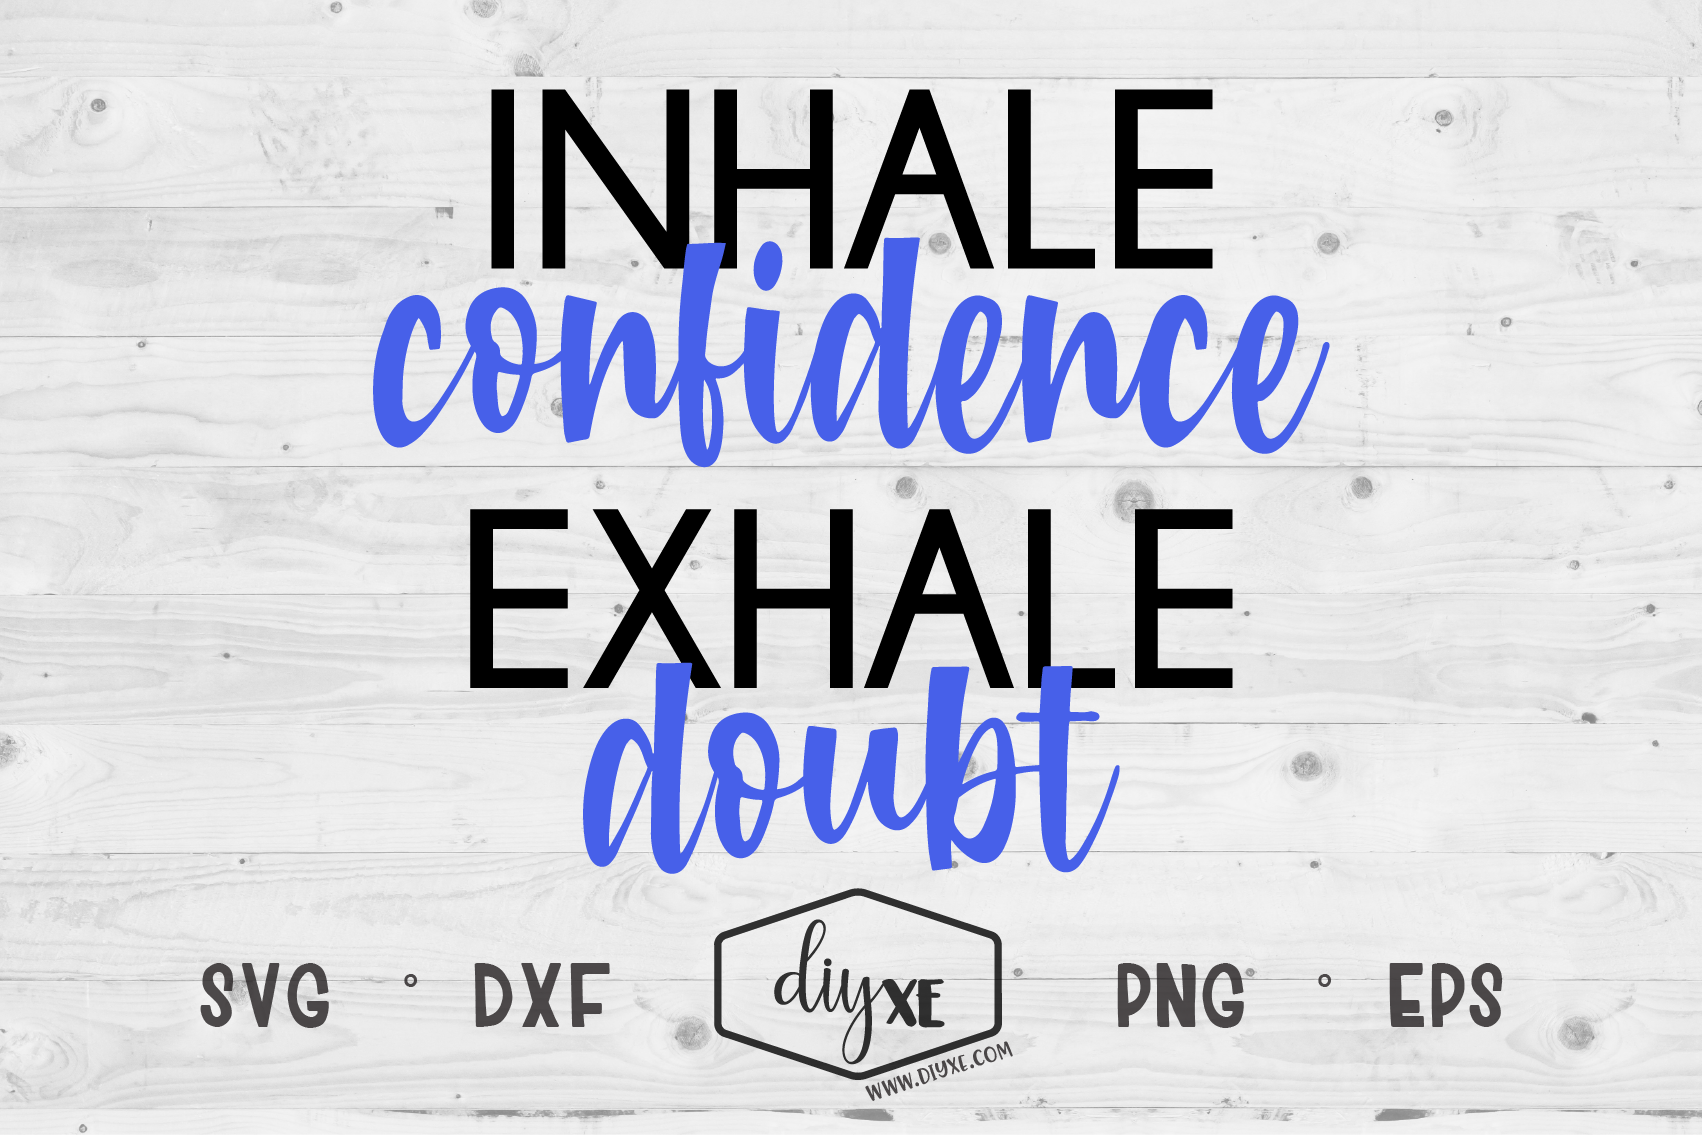 Download Free Inhale Confidence Exhale Doubt Graphic By Sheryl Holst for Cricut Explore, Silhouette and other cutting machines.